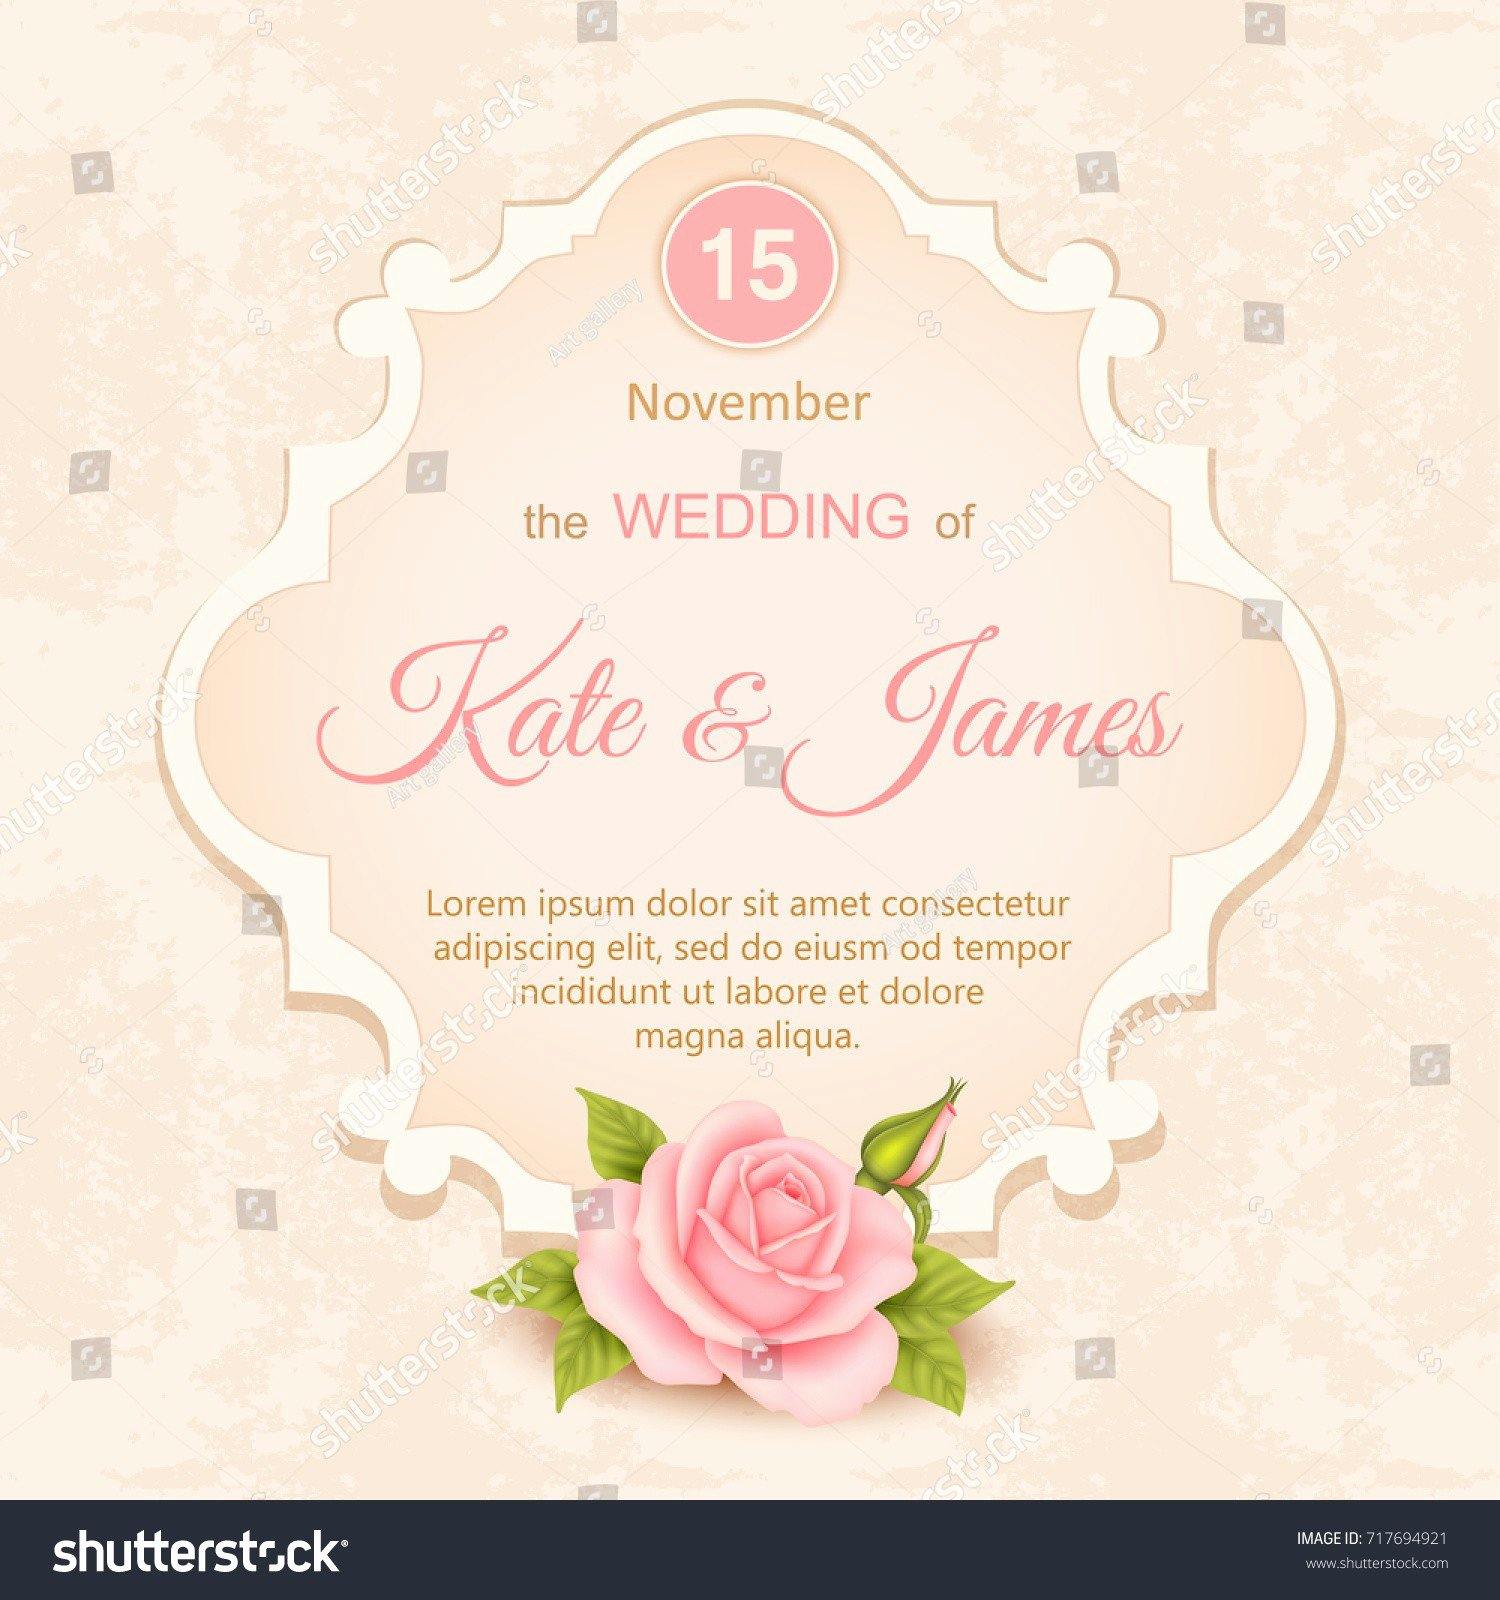 Wedding Anniversary Invite Template Unique 60th Wedding Anniversary Invitations Templates